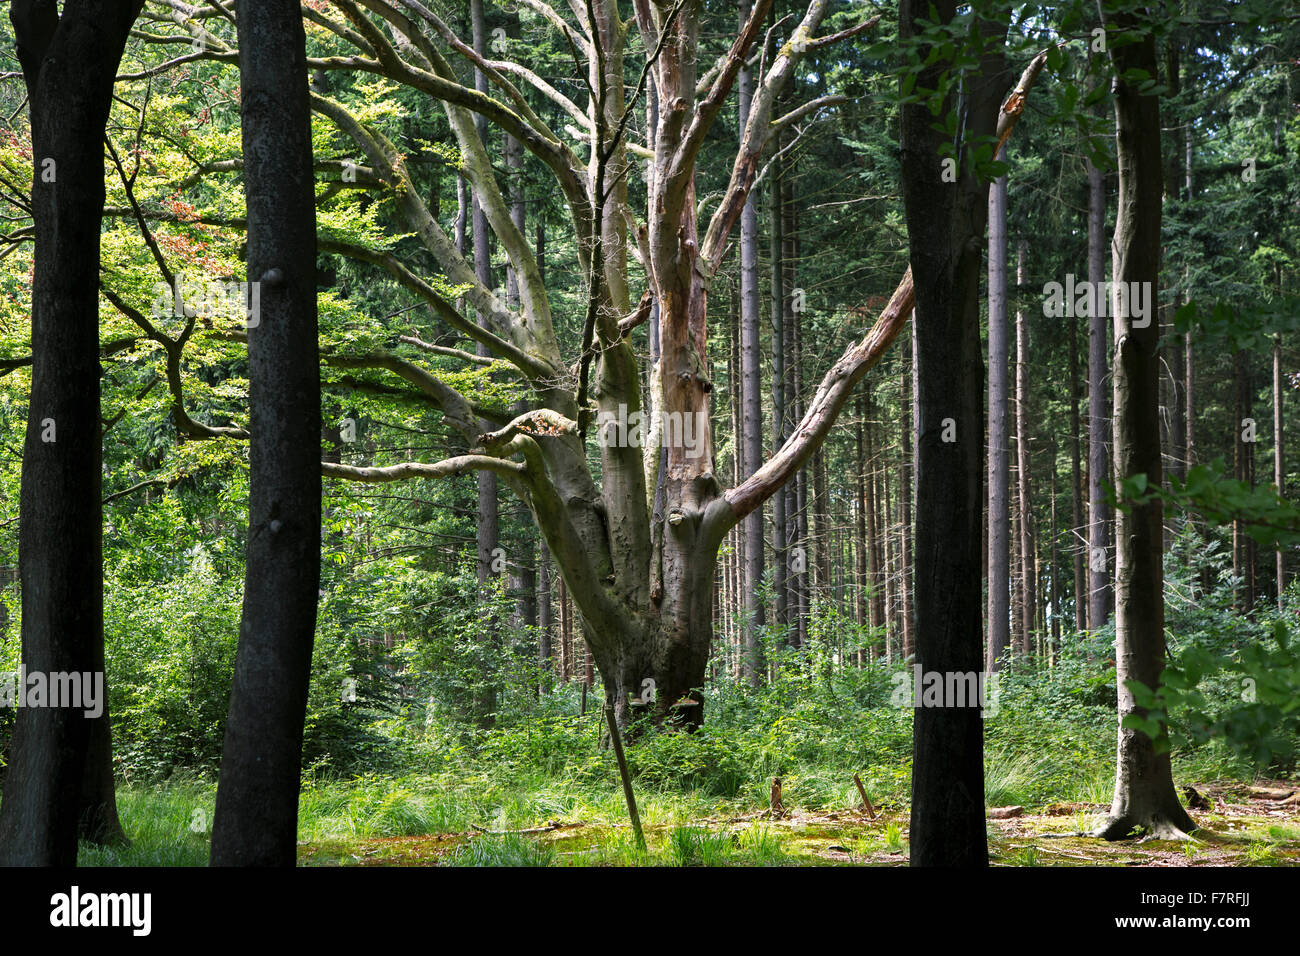 Old beech tree (Fagus sylvatica) among pine trees in mixed forest - Stock Image